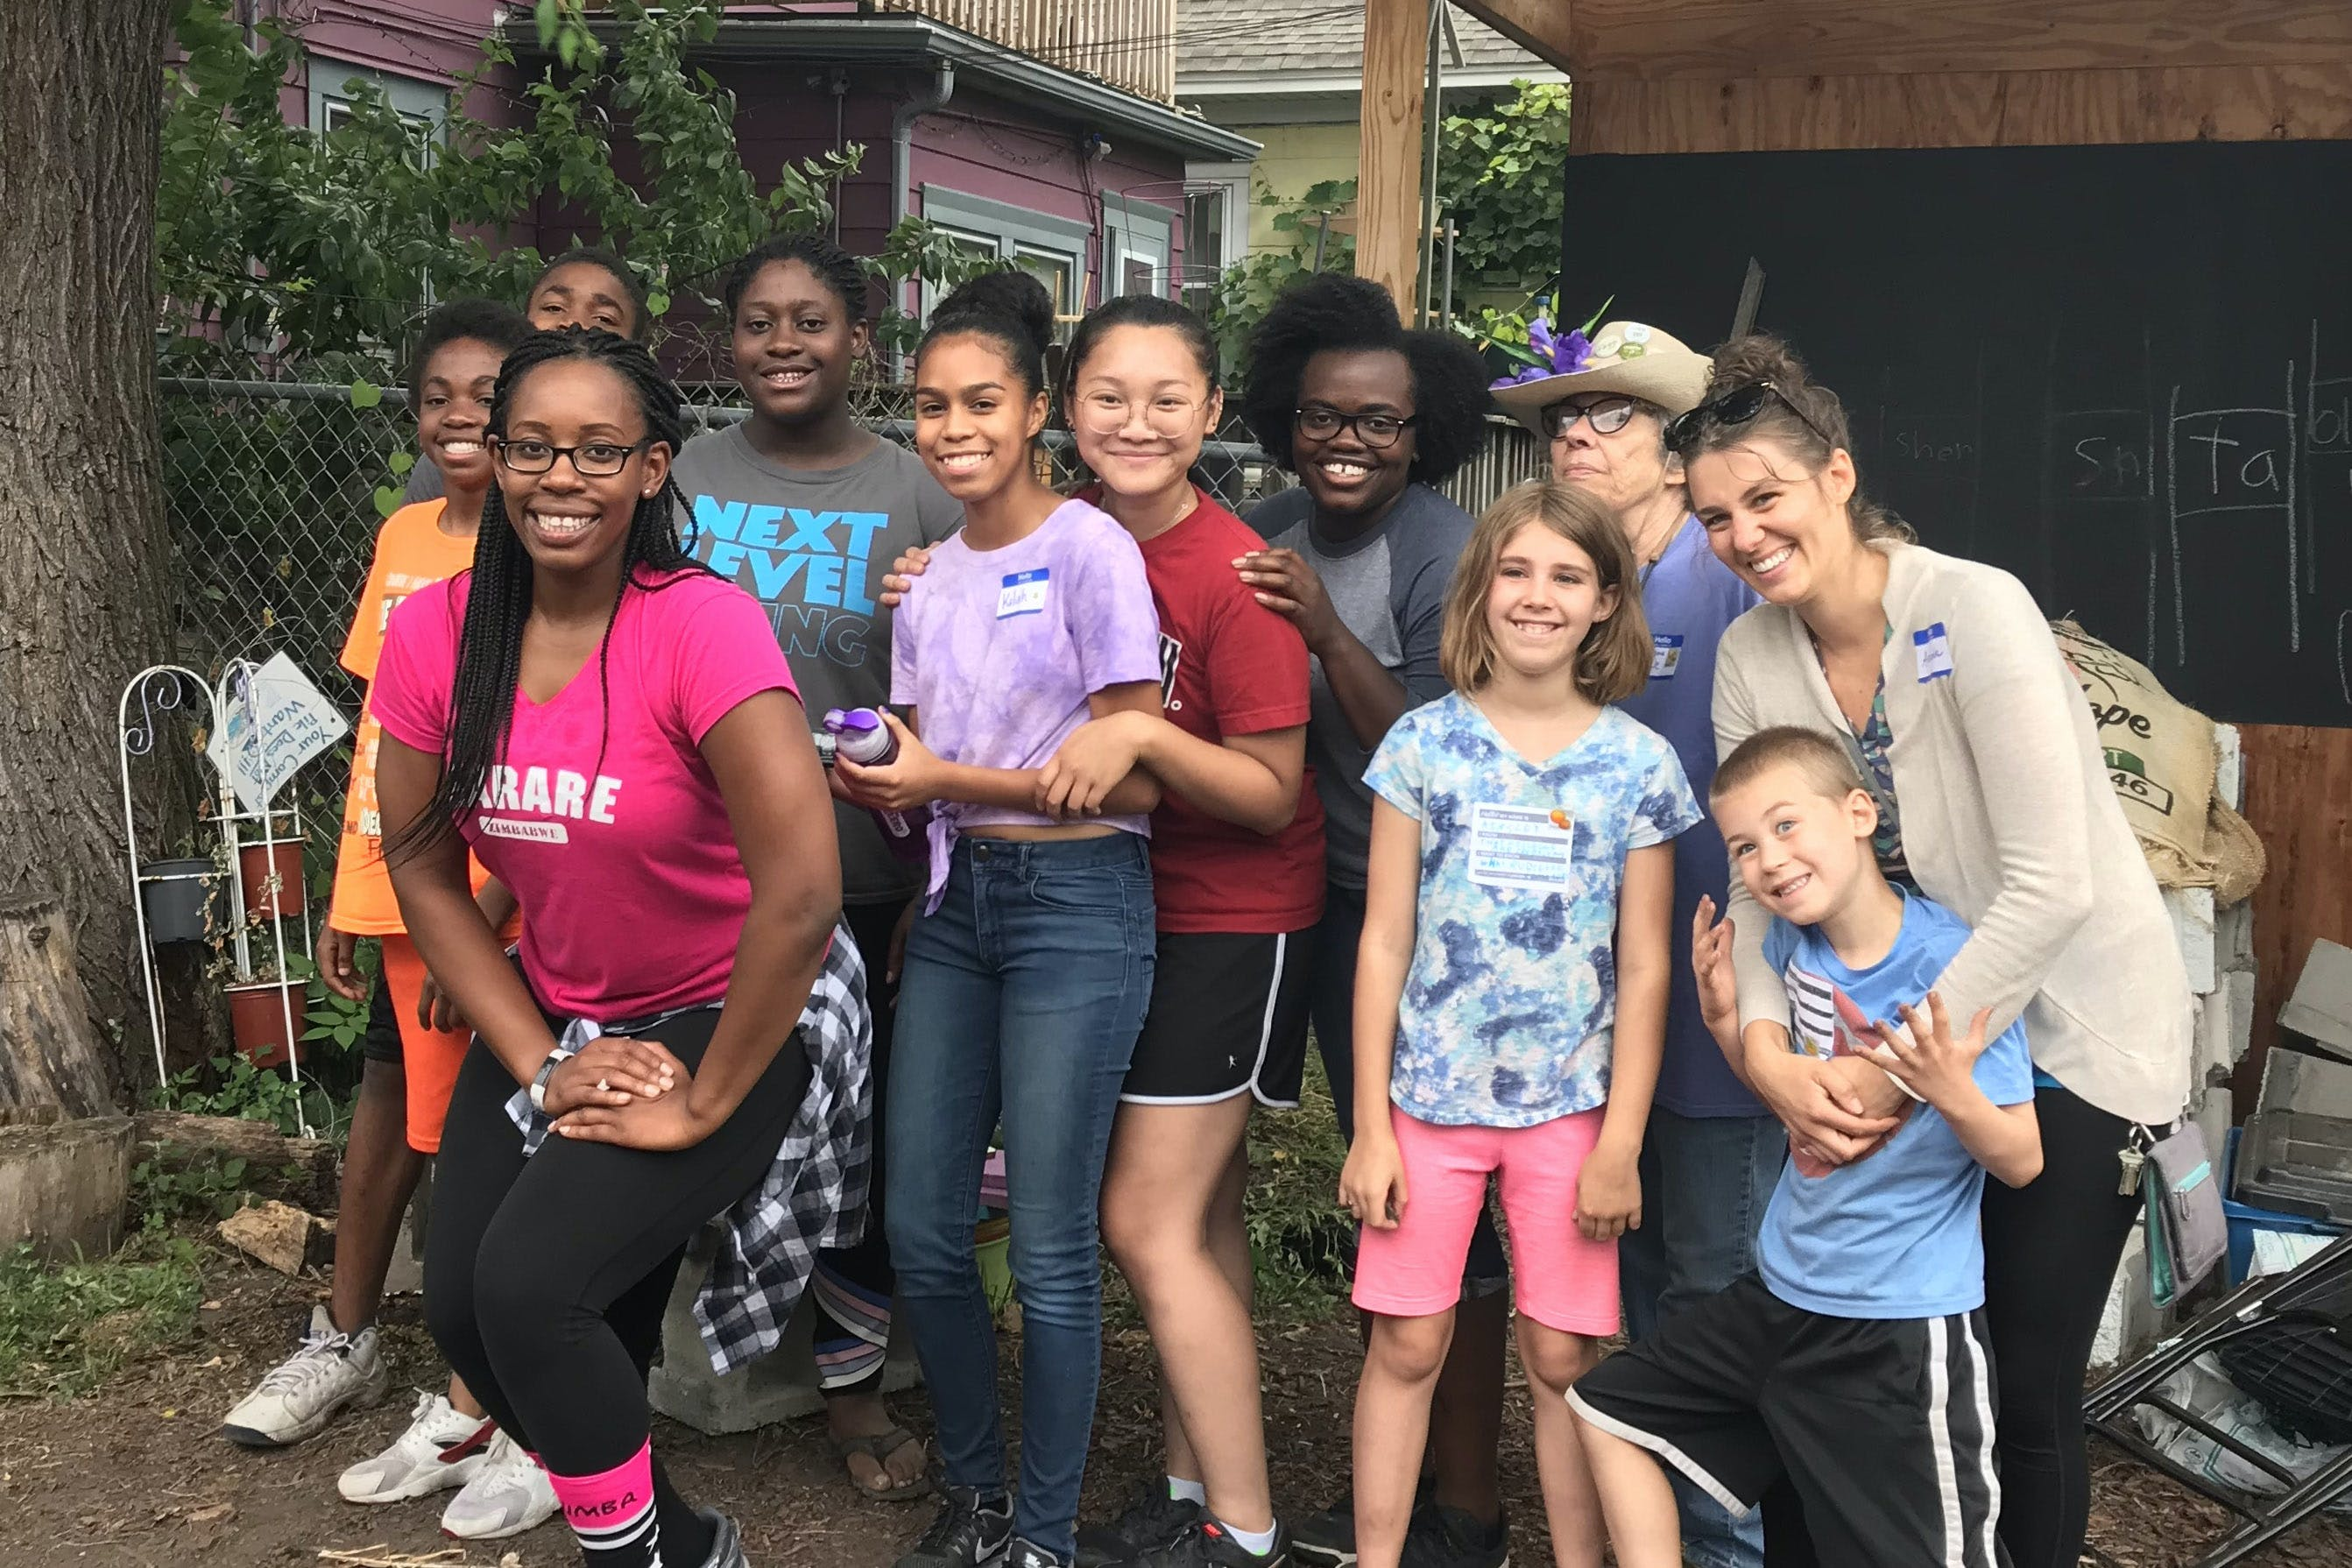 Hilda Davis works with the Urban Farm and Garden Alliance through Bethel University's partnership with the Frogtown and Summit-University neighborhoods.